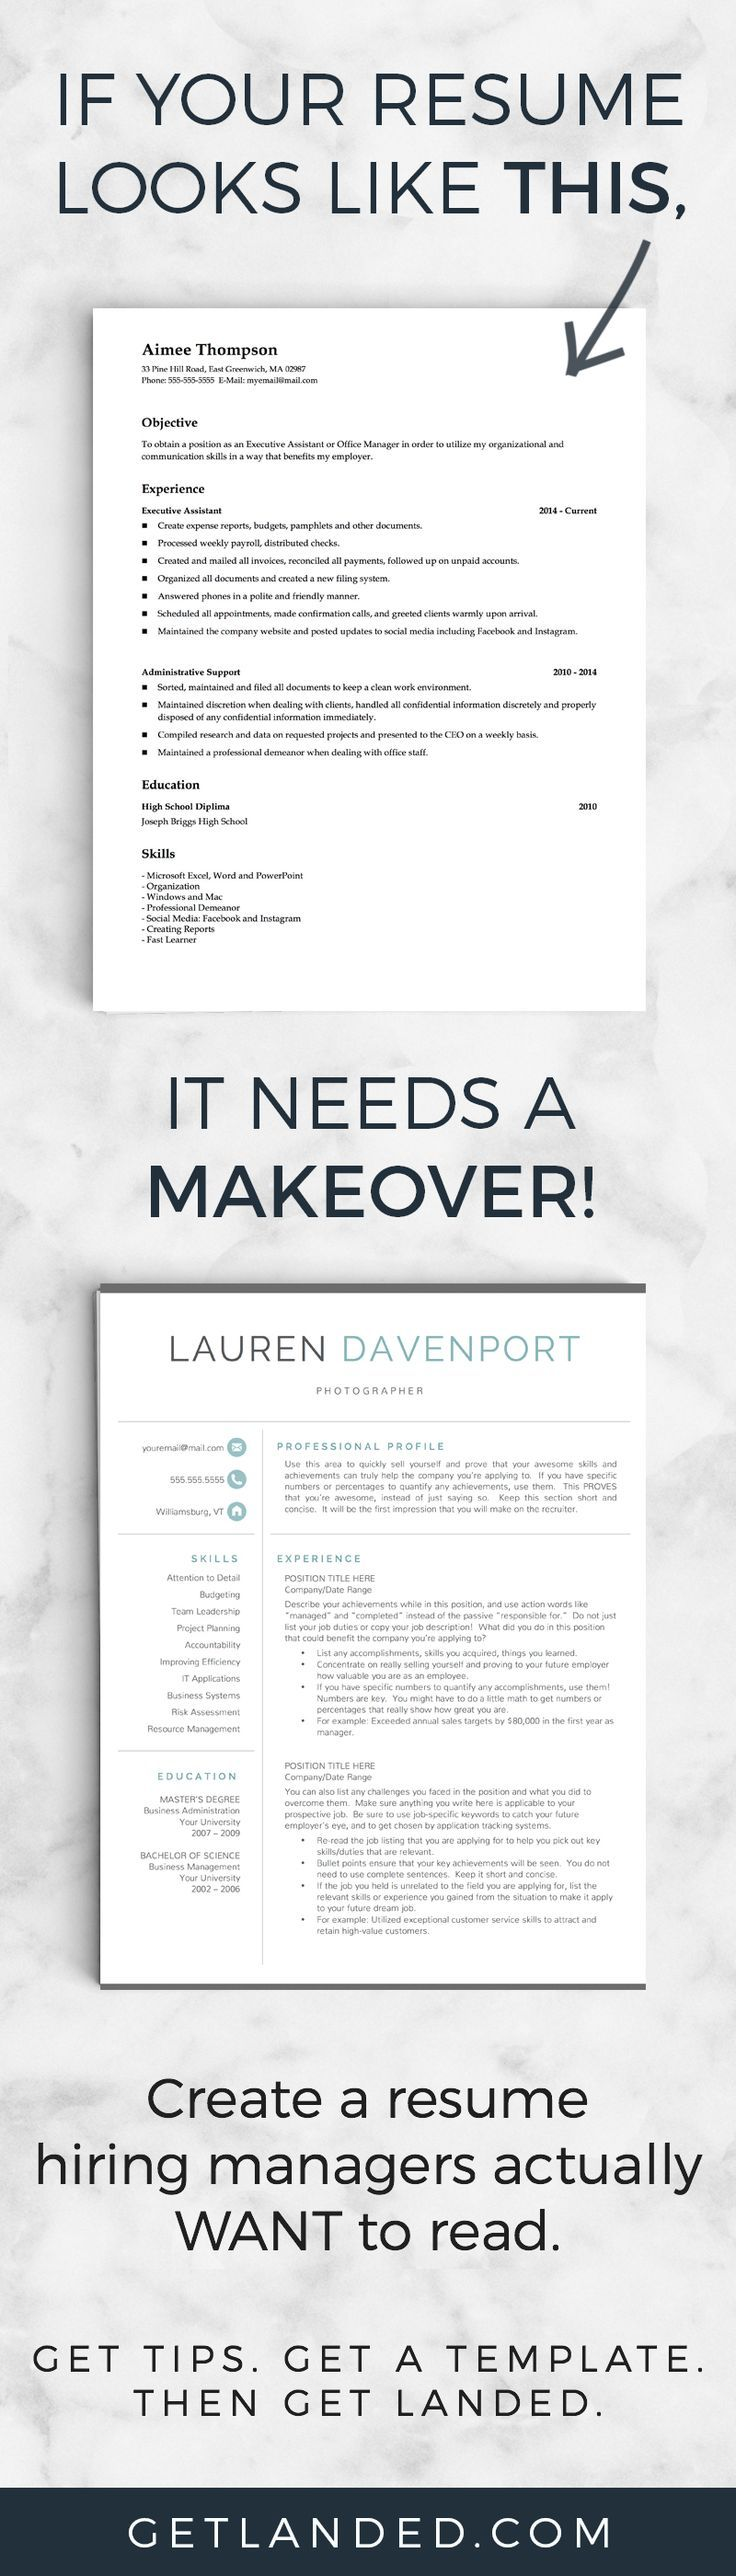 80 of candidates desperately need a resume makeover get a resume makeover today with - Resume T